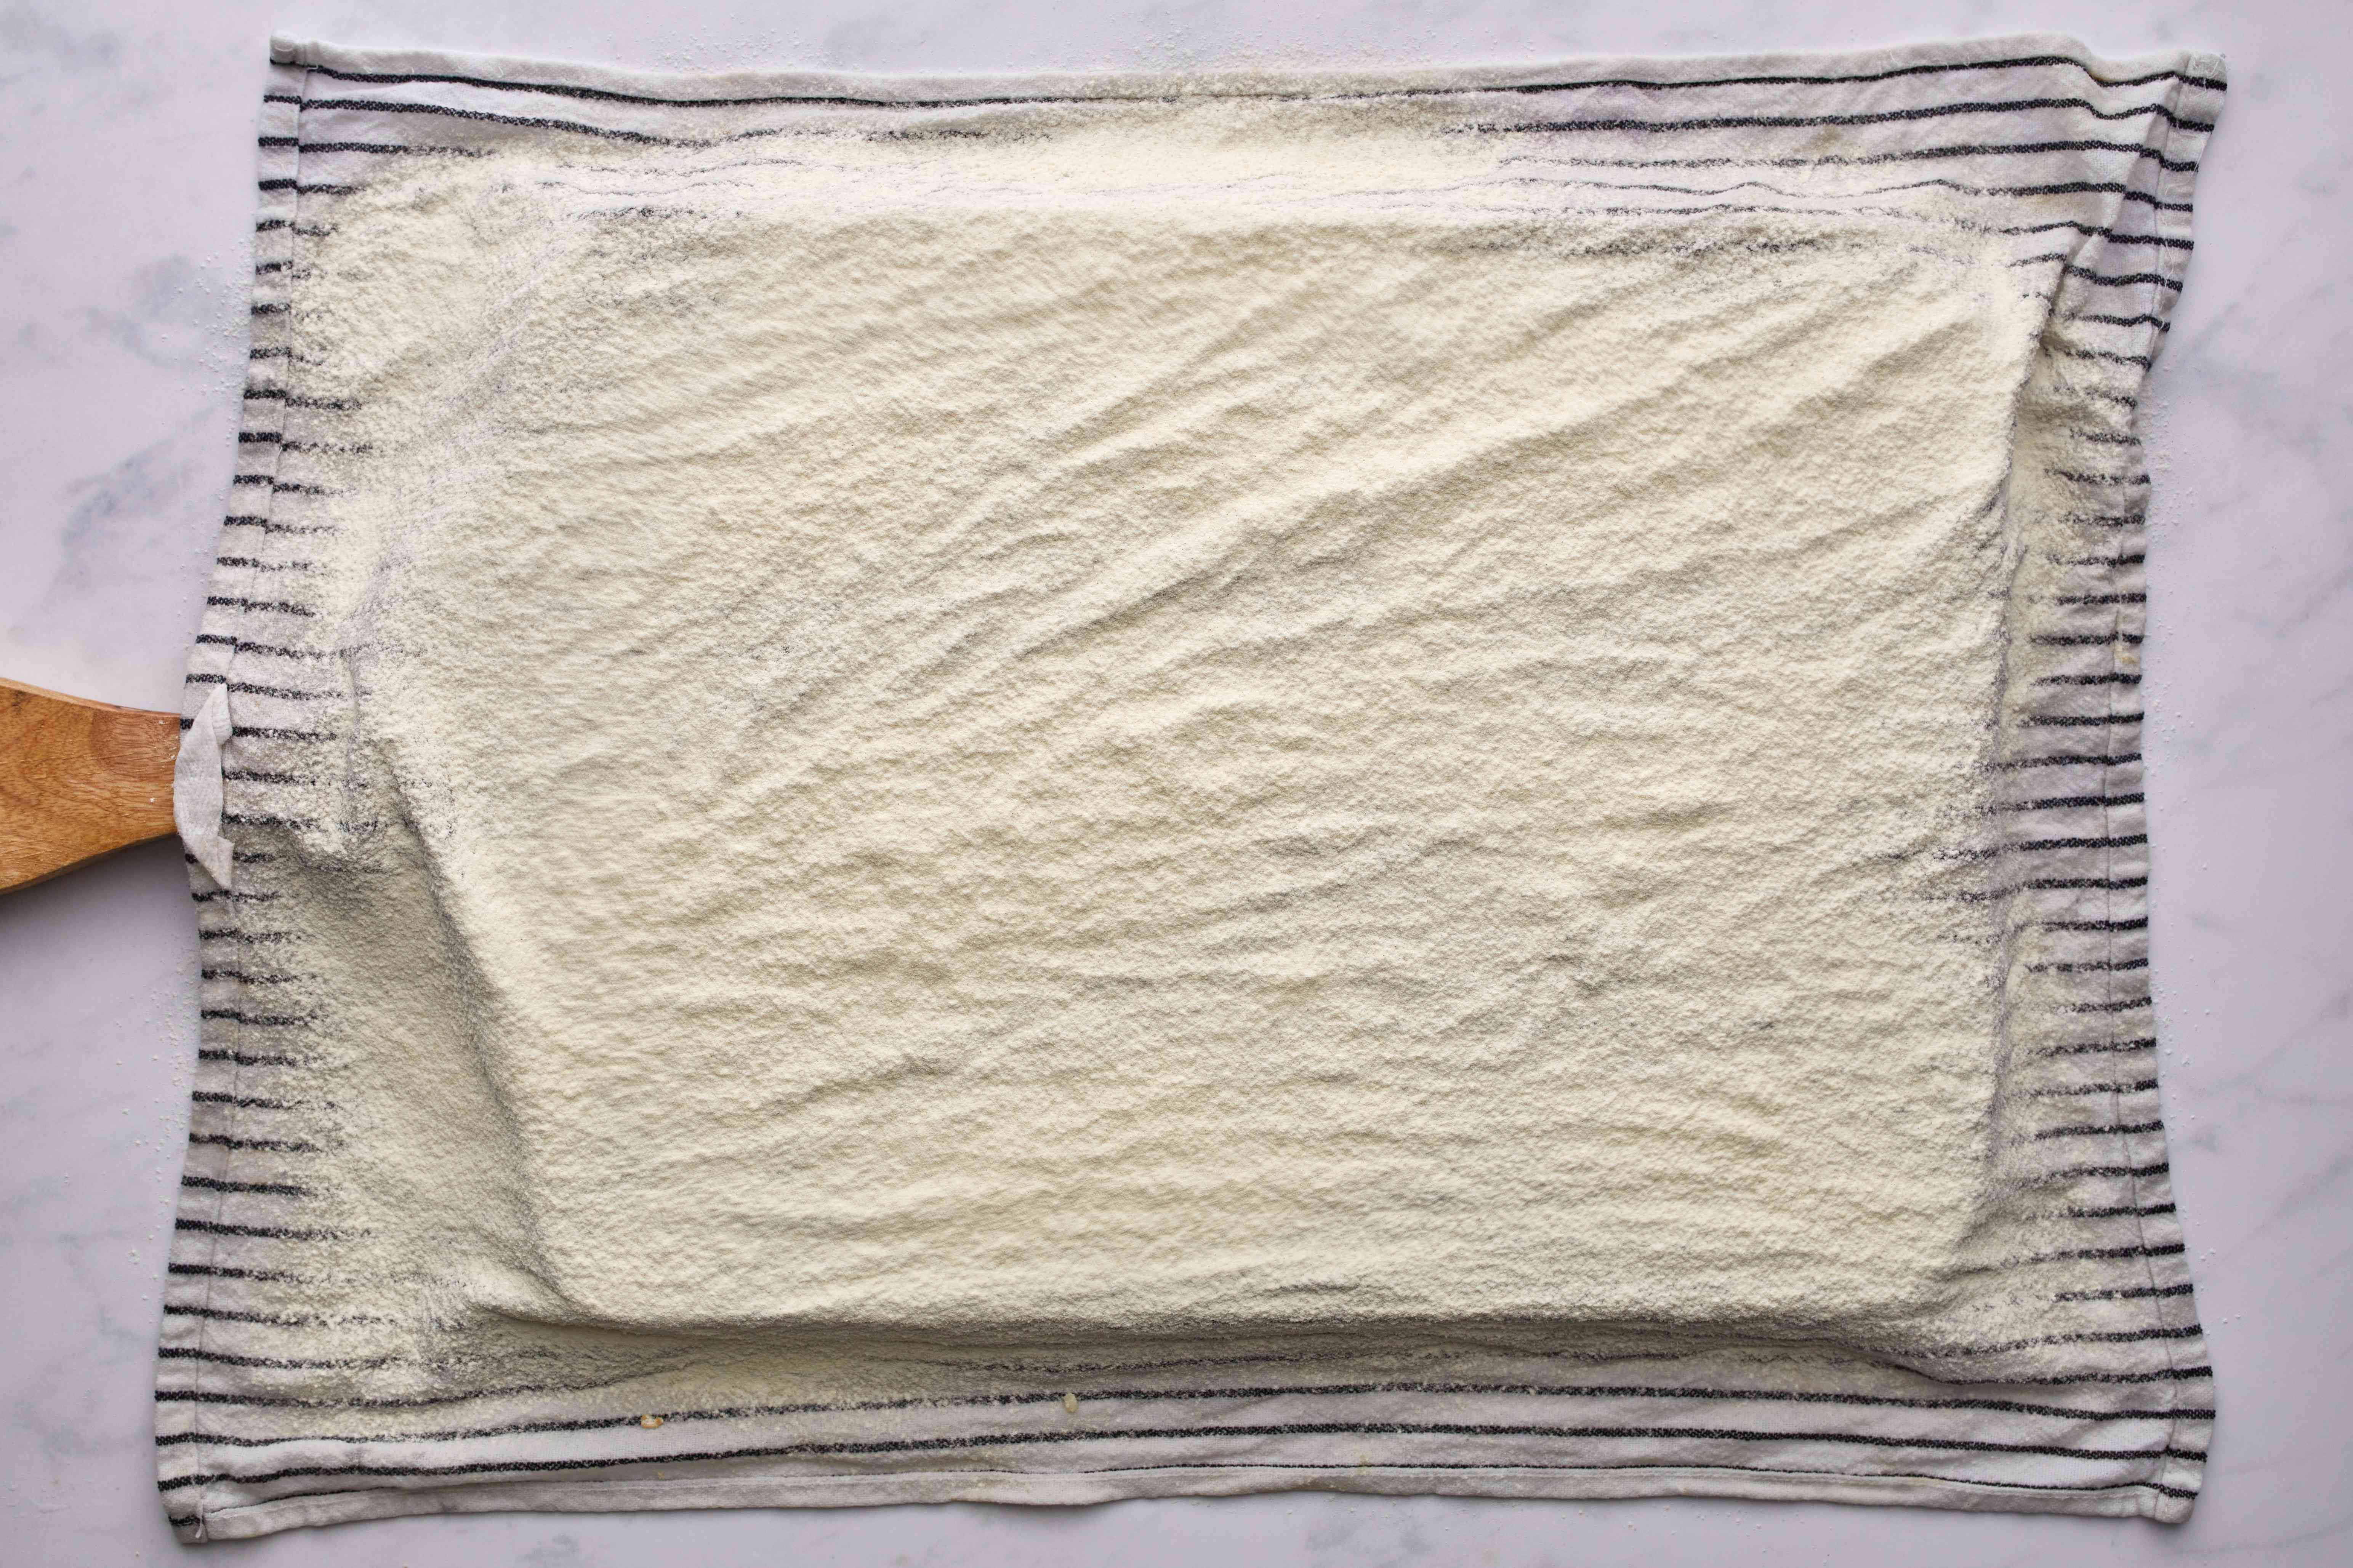 clootie cloth with flour on top